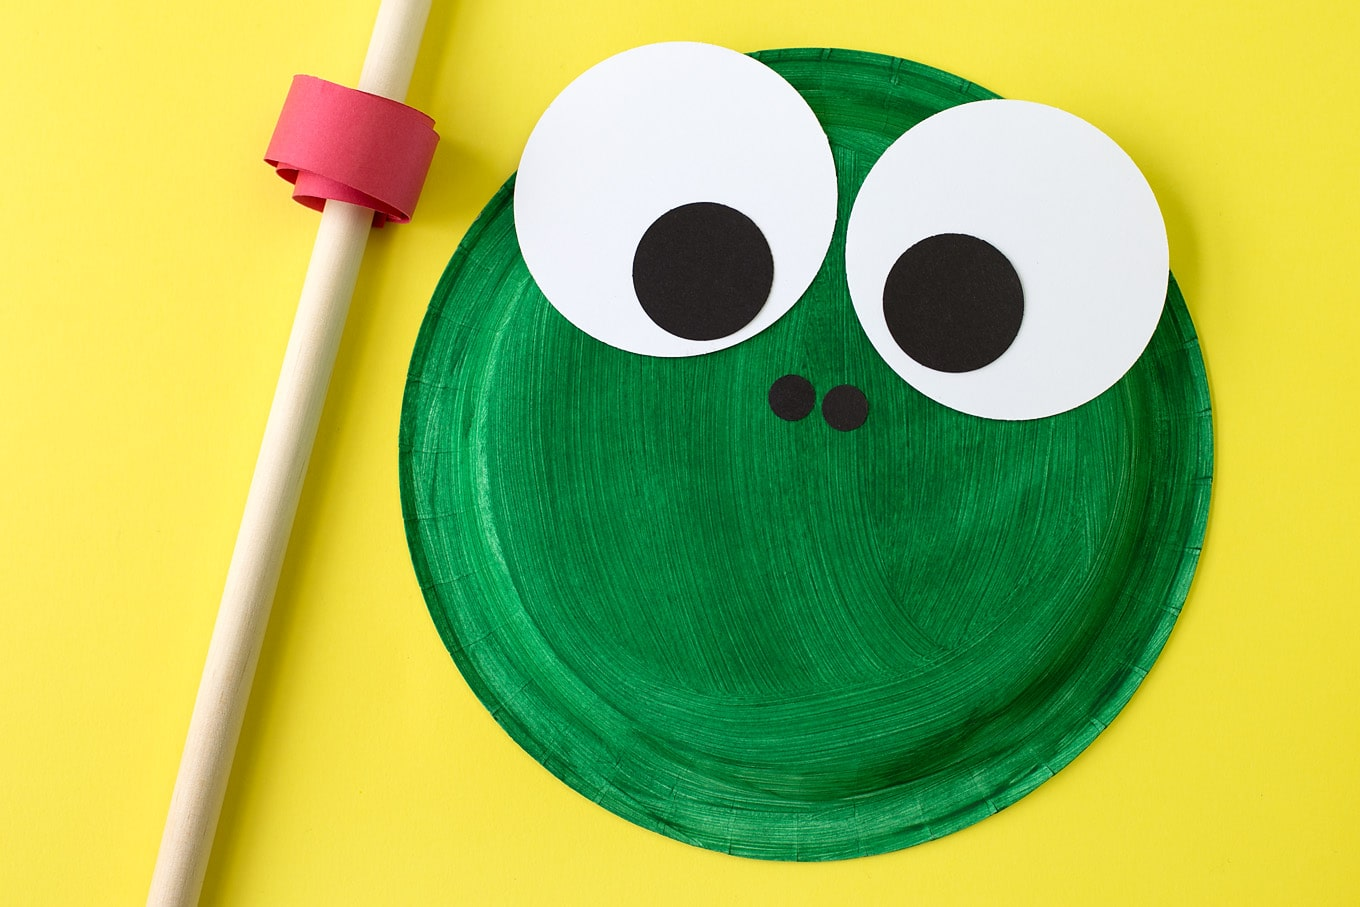 Paper Plate Frog Craft In-Process